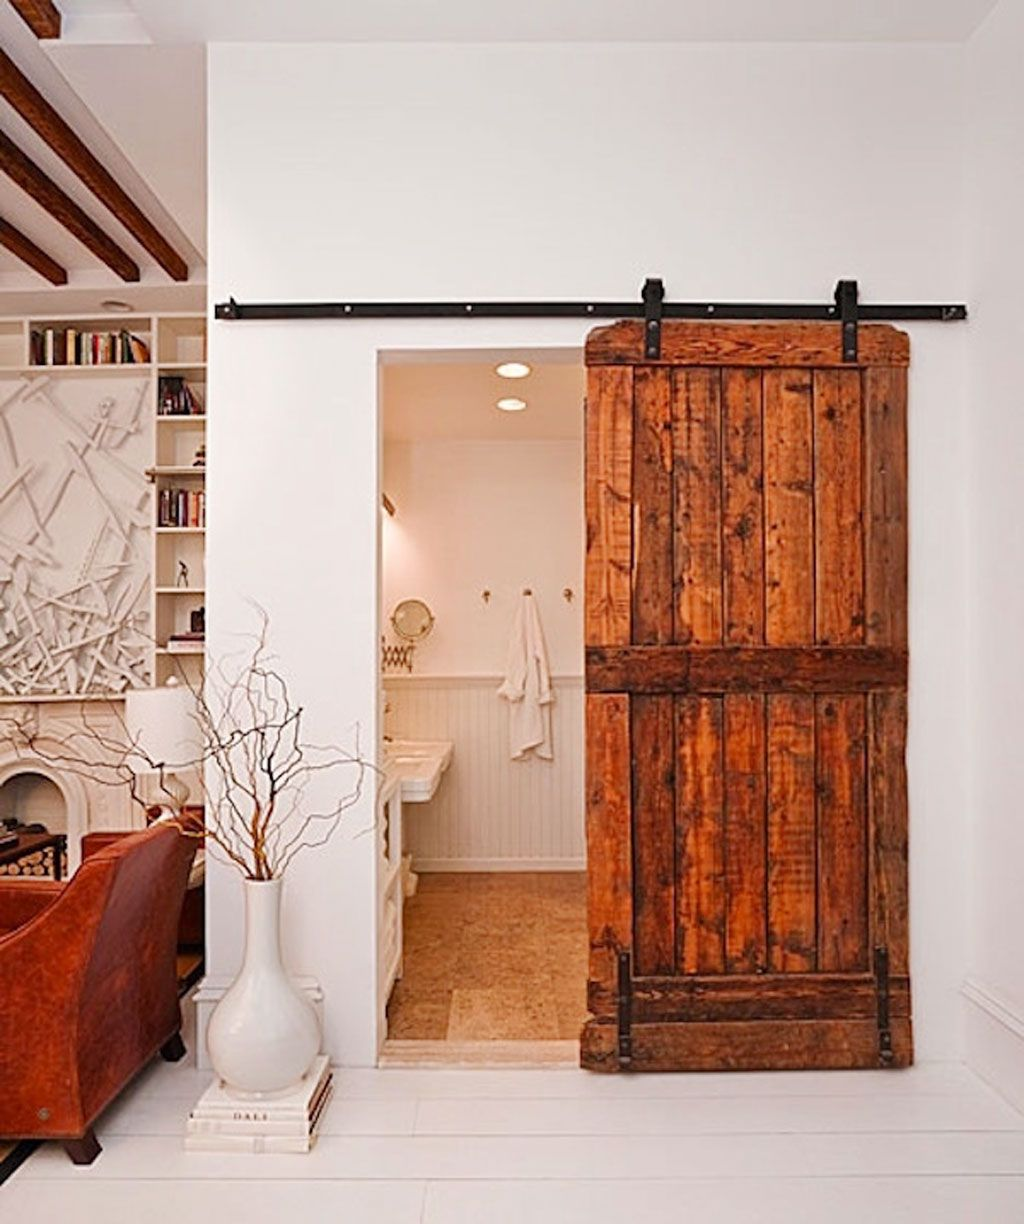 Small Half Bathroom Ideas 008 Photo Small Half Bathroom Ideas 008 Close Up View Rustic Doors Interior Barn Doors Sliding Bathroom Barn Door